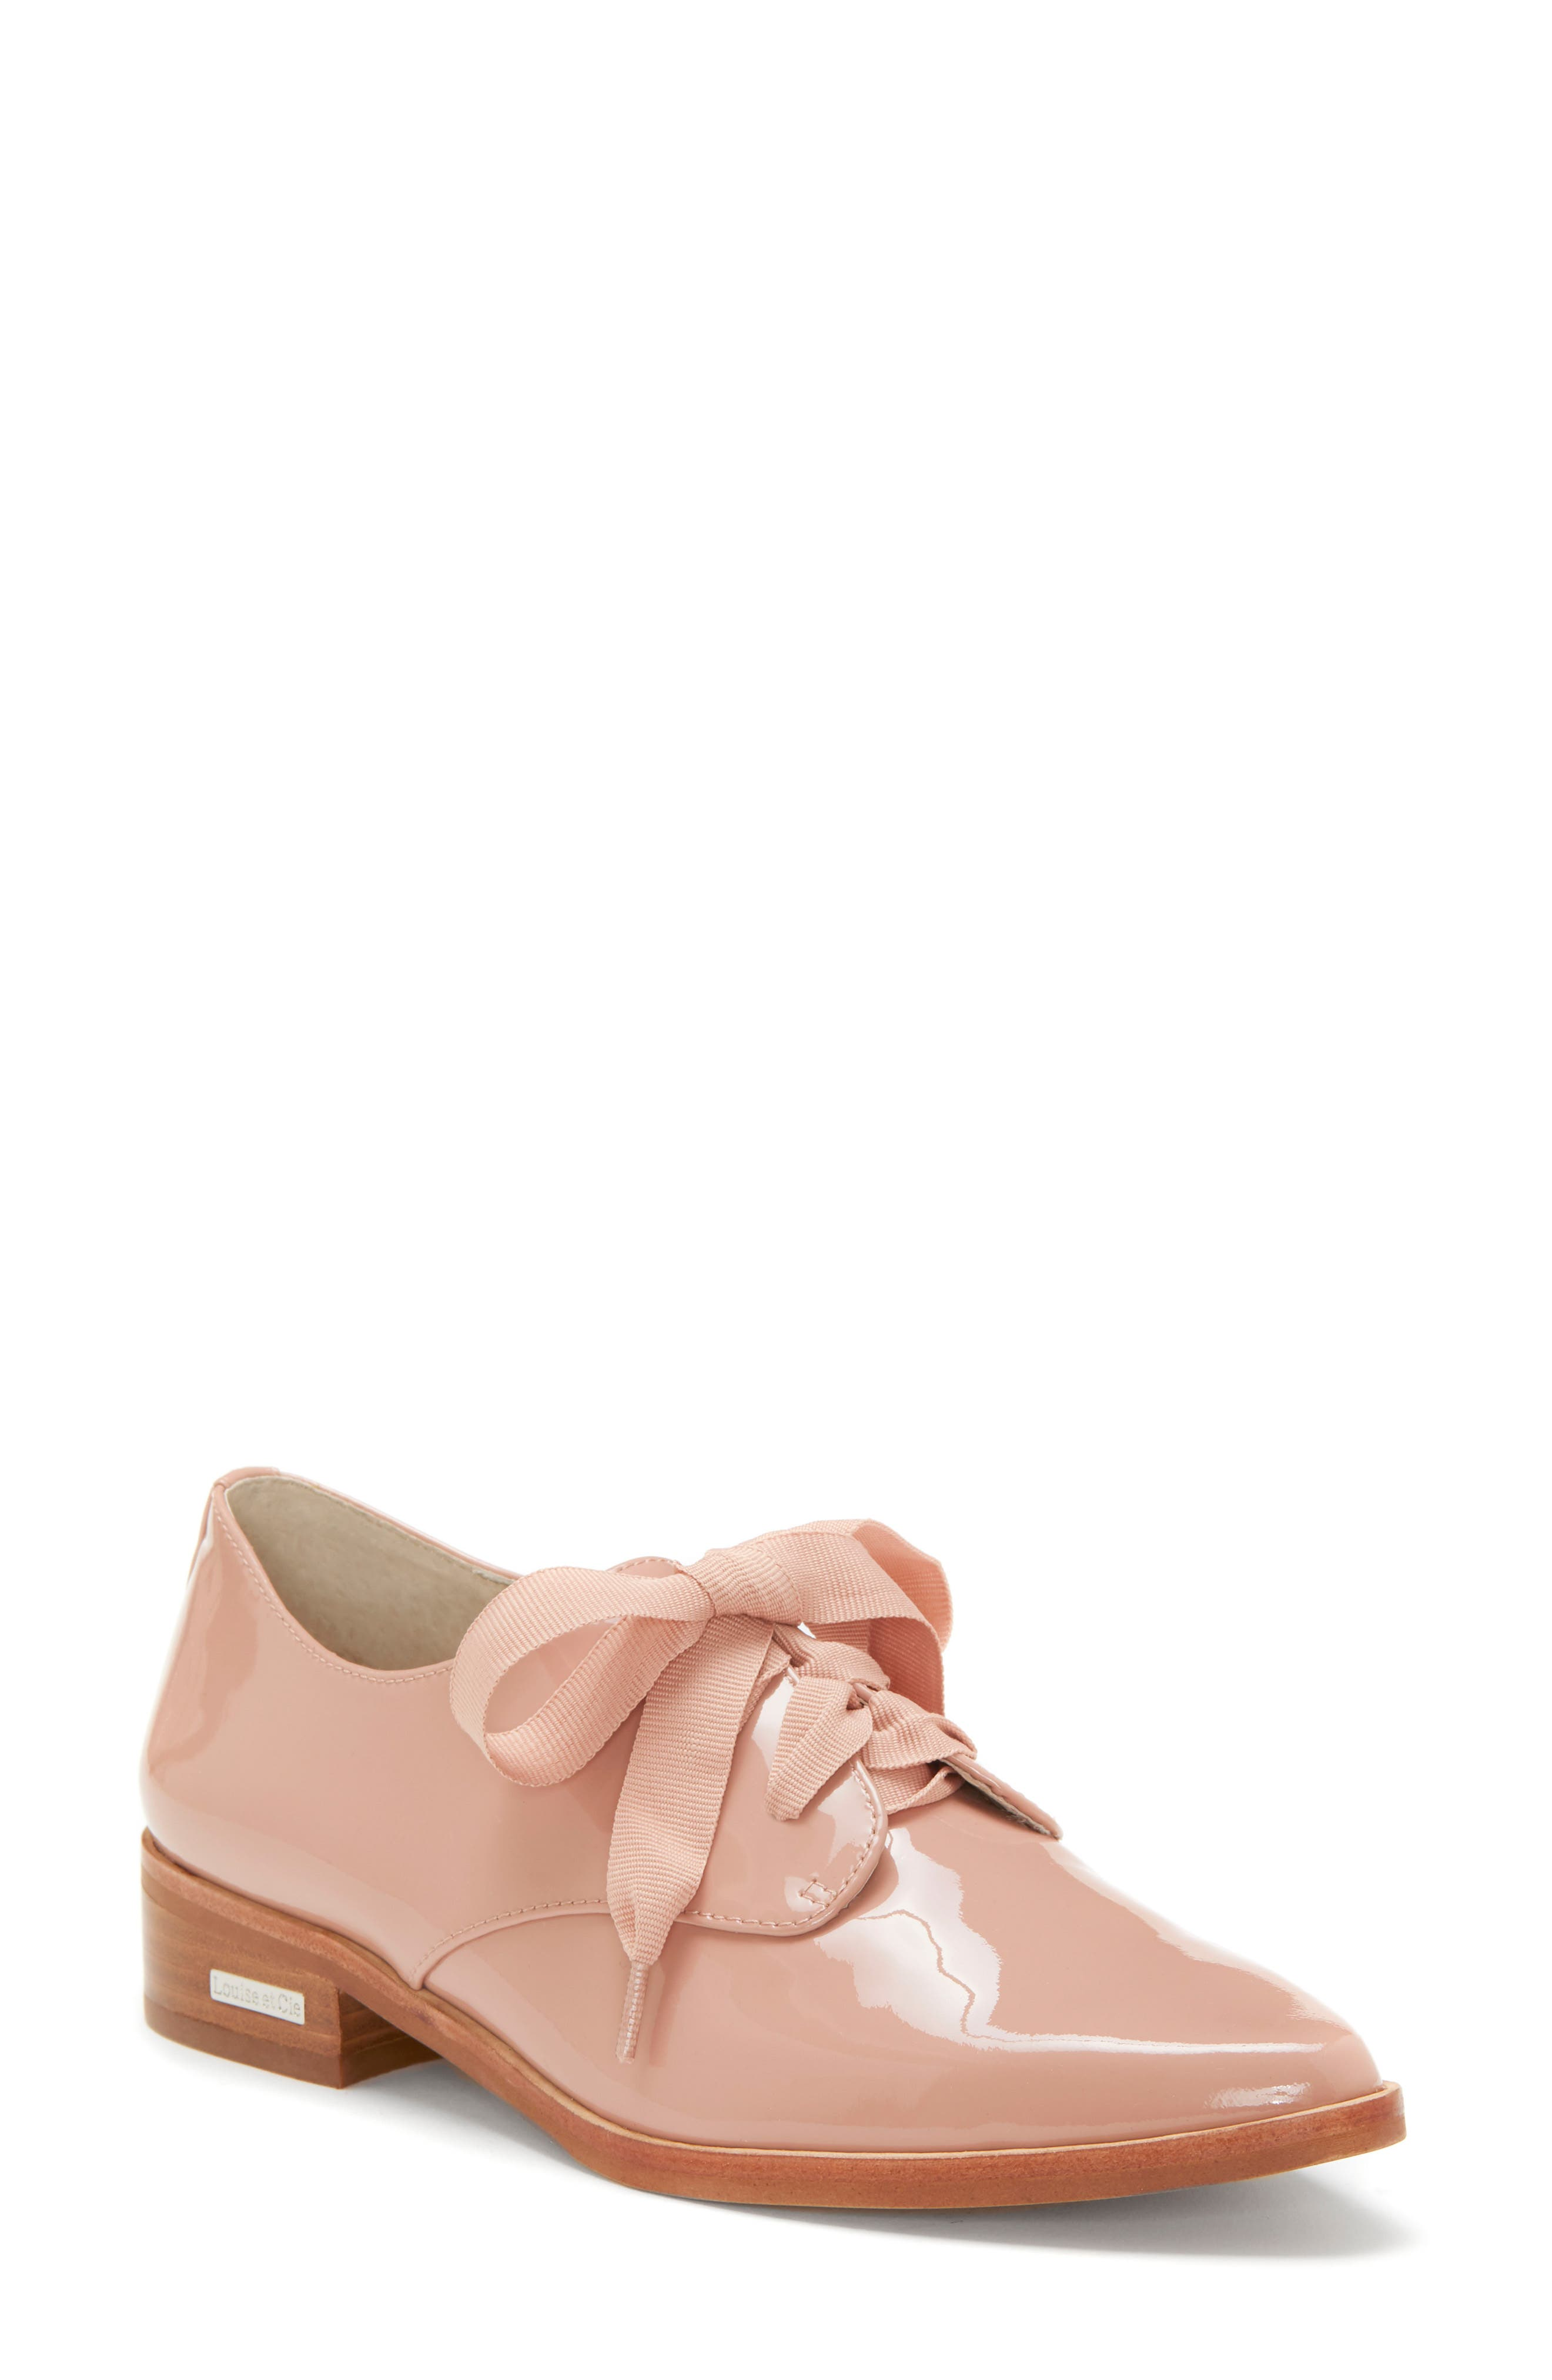 LOUISE ET CIE, Adwin Almond Toe Oxford, Main thumbnail 1, color, FOUNDATION PATENT